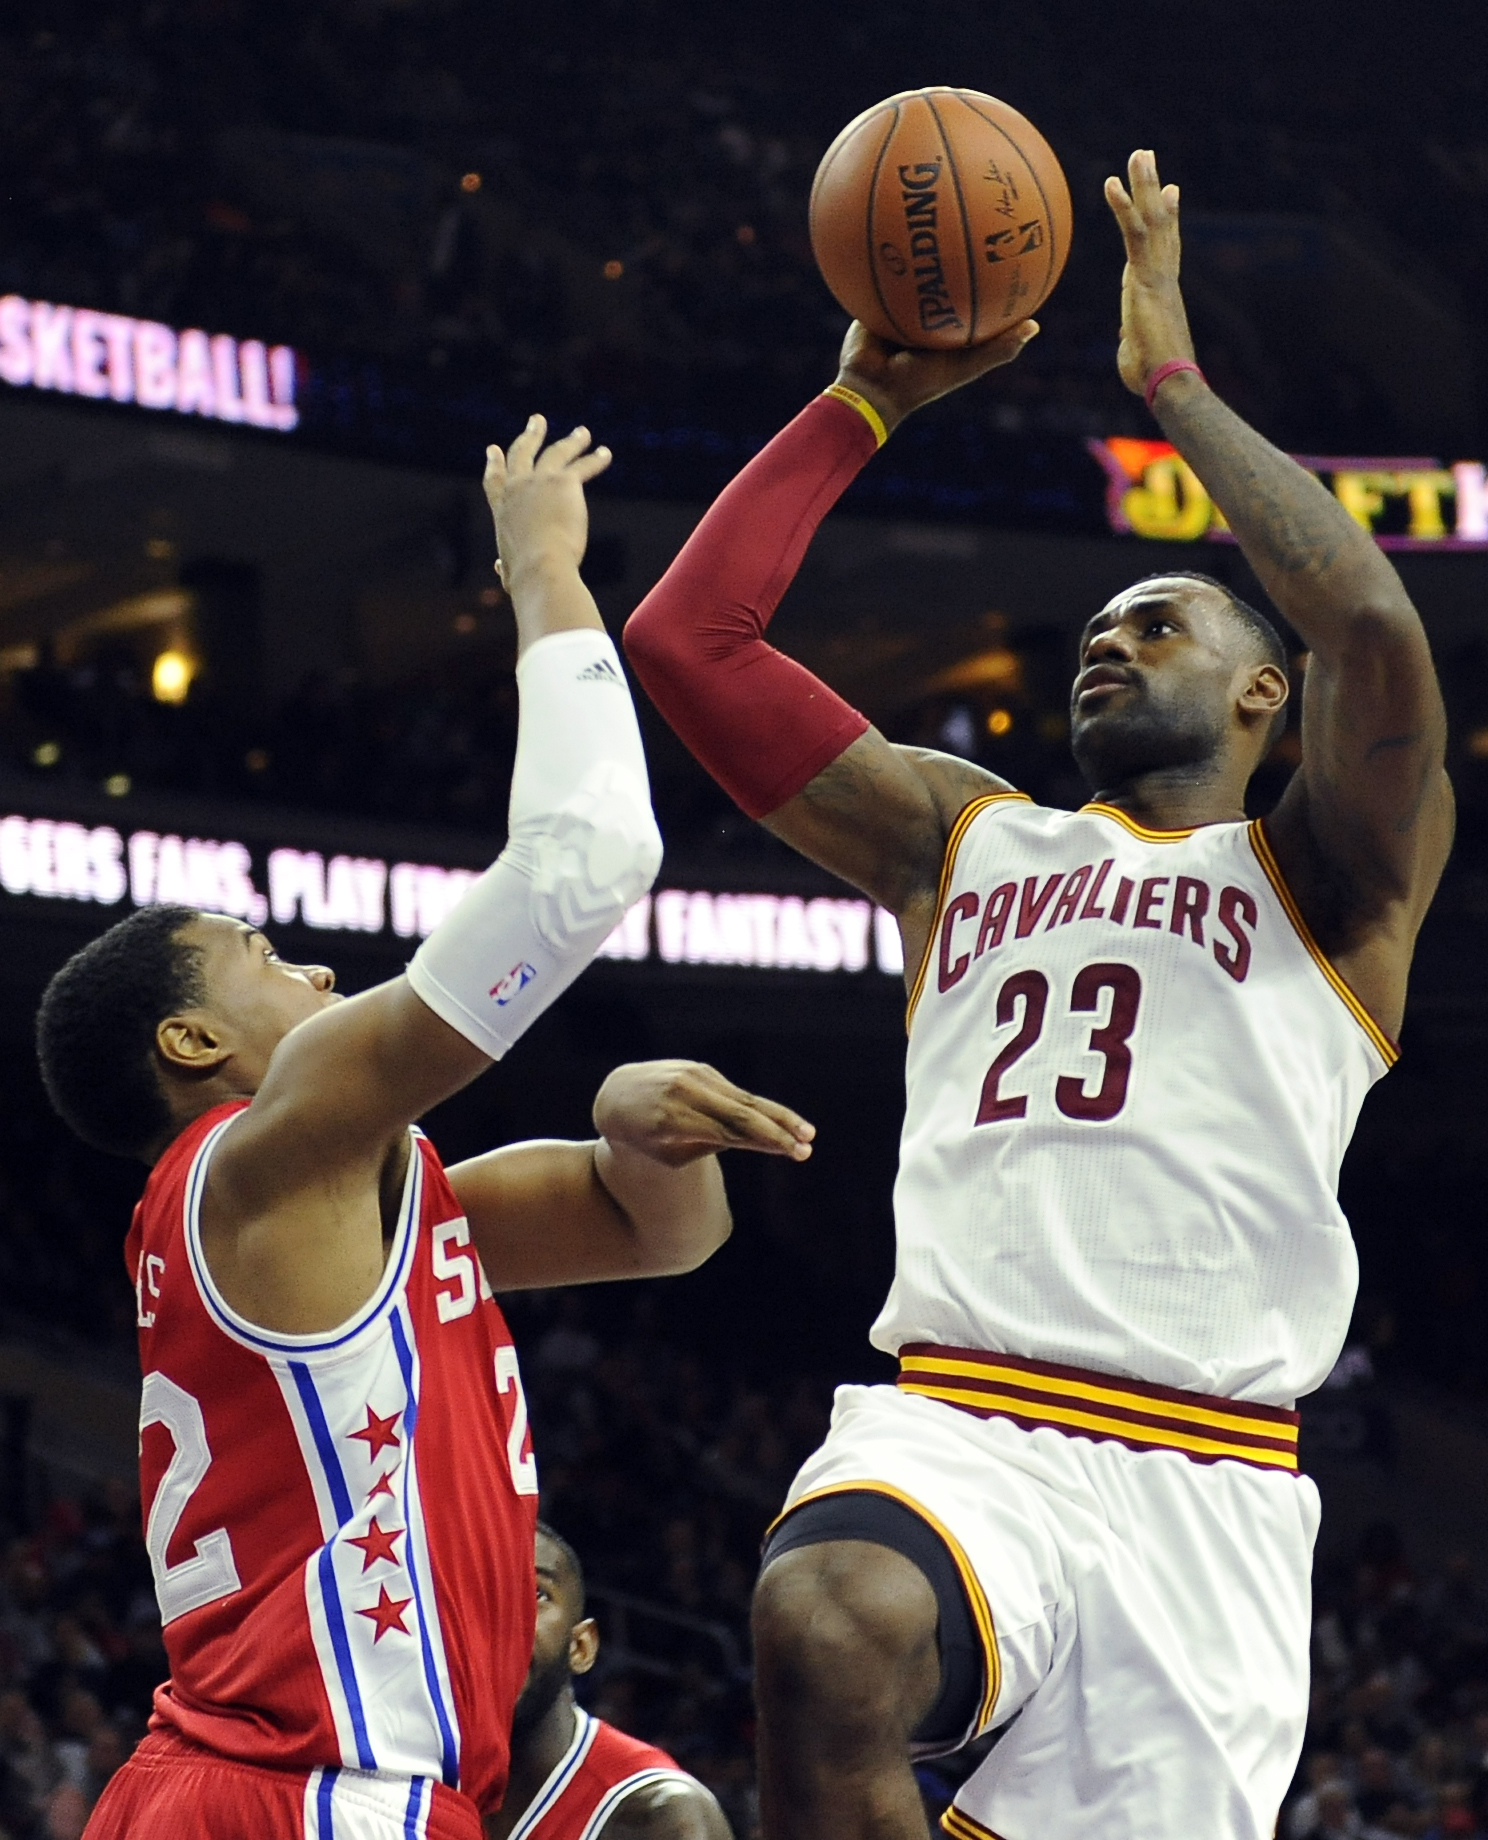 Cleveland Cavaliers' LeBron James (23) shoots over Philadelphia 76ers' Richaun Holmes during the first half of an NBA basketball game Monday, Nov. 2, 2015, in Philadelphia. (AP Photo/Michael Perez)